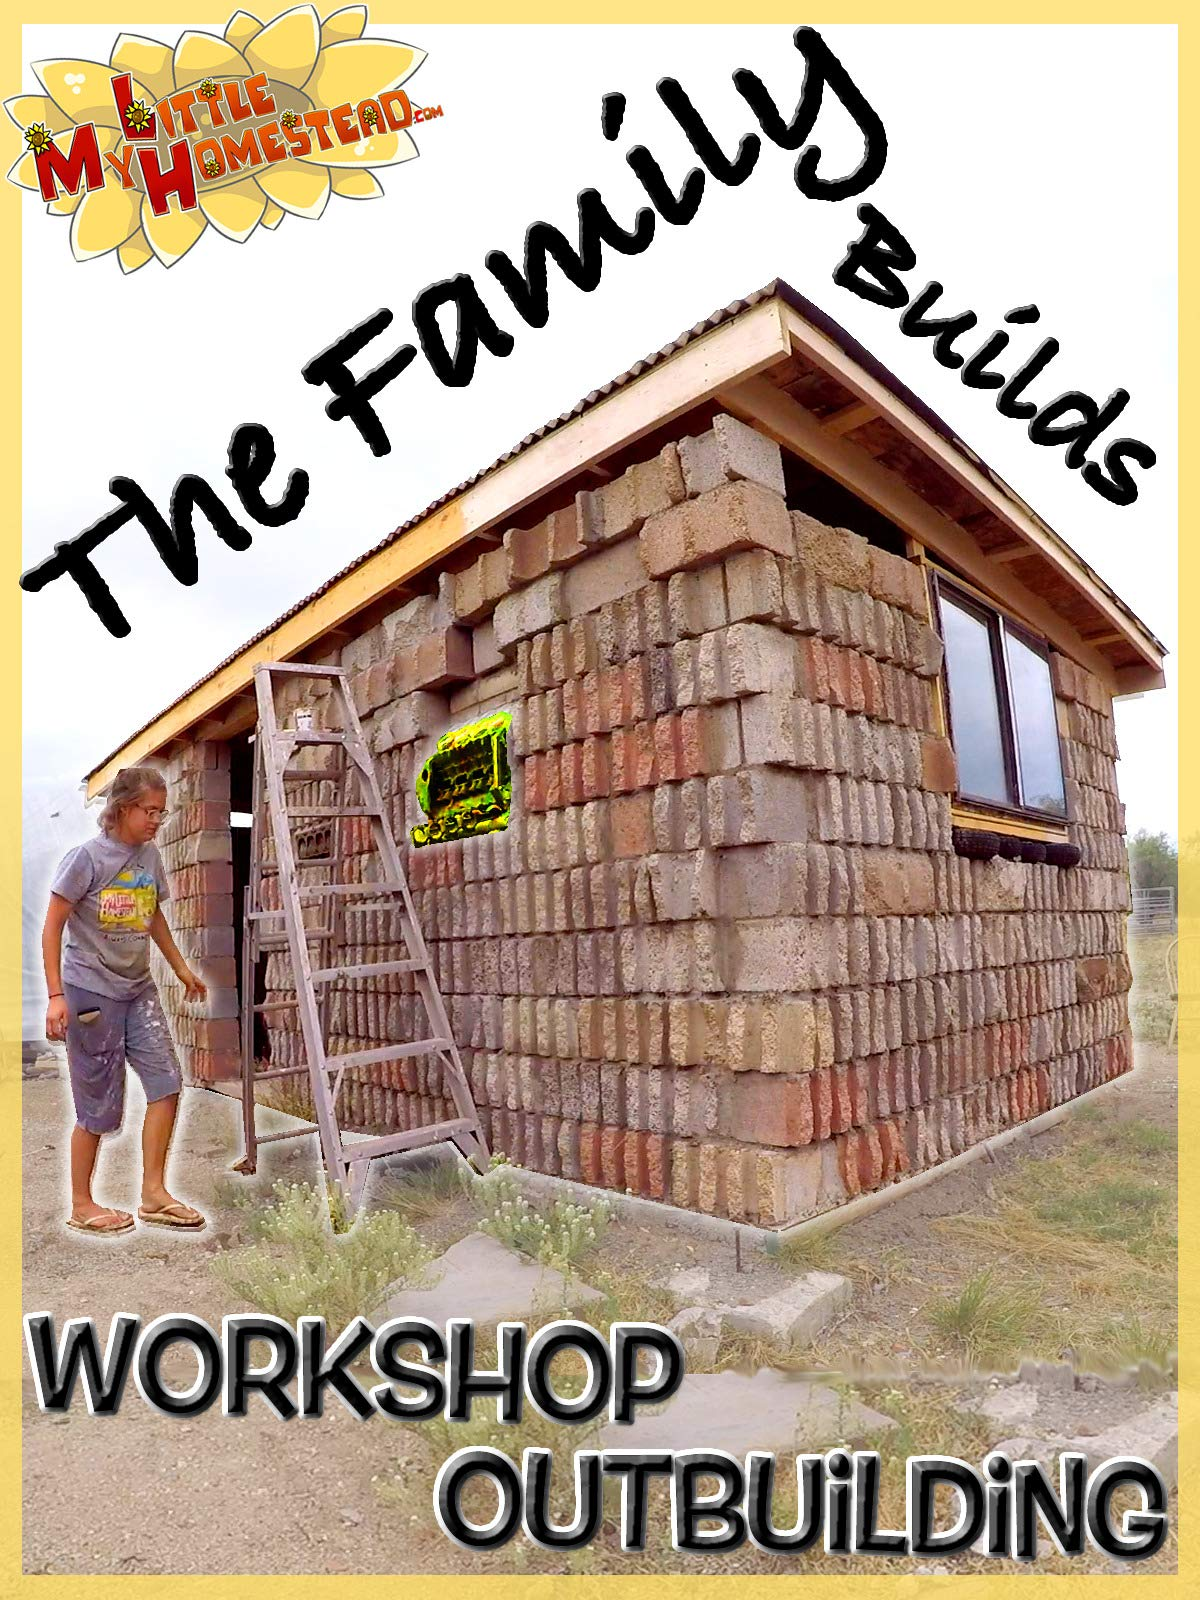 The Family Builds Workshop Outbuilding